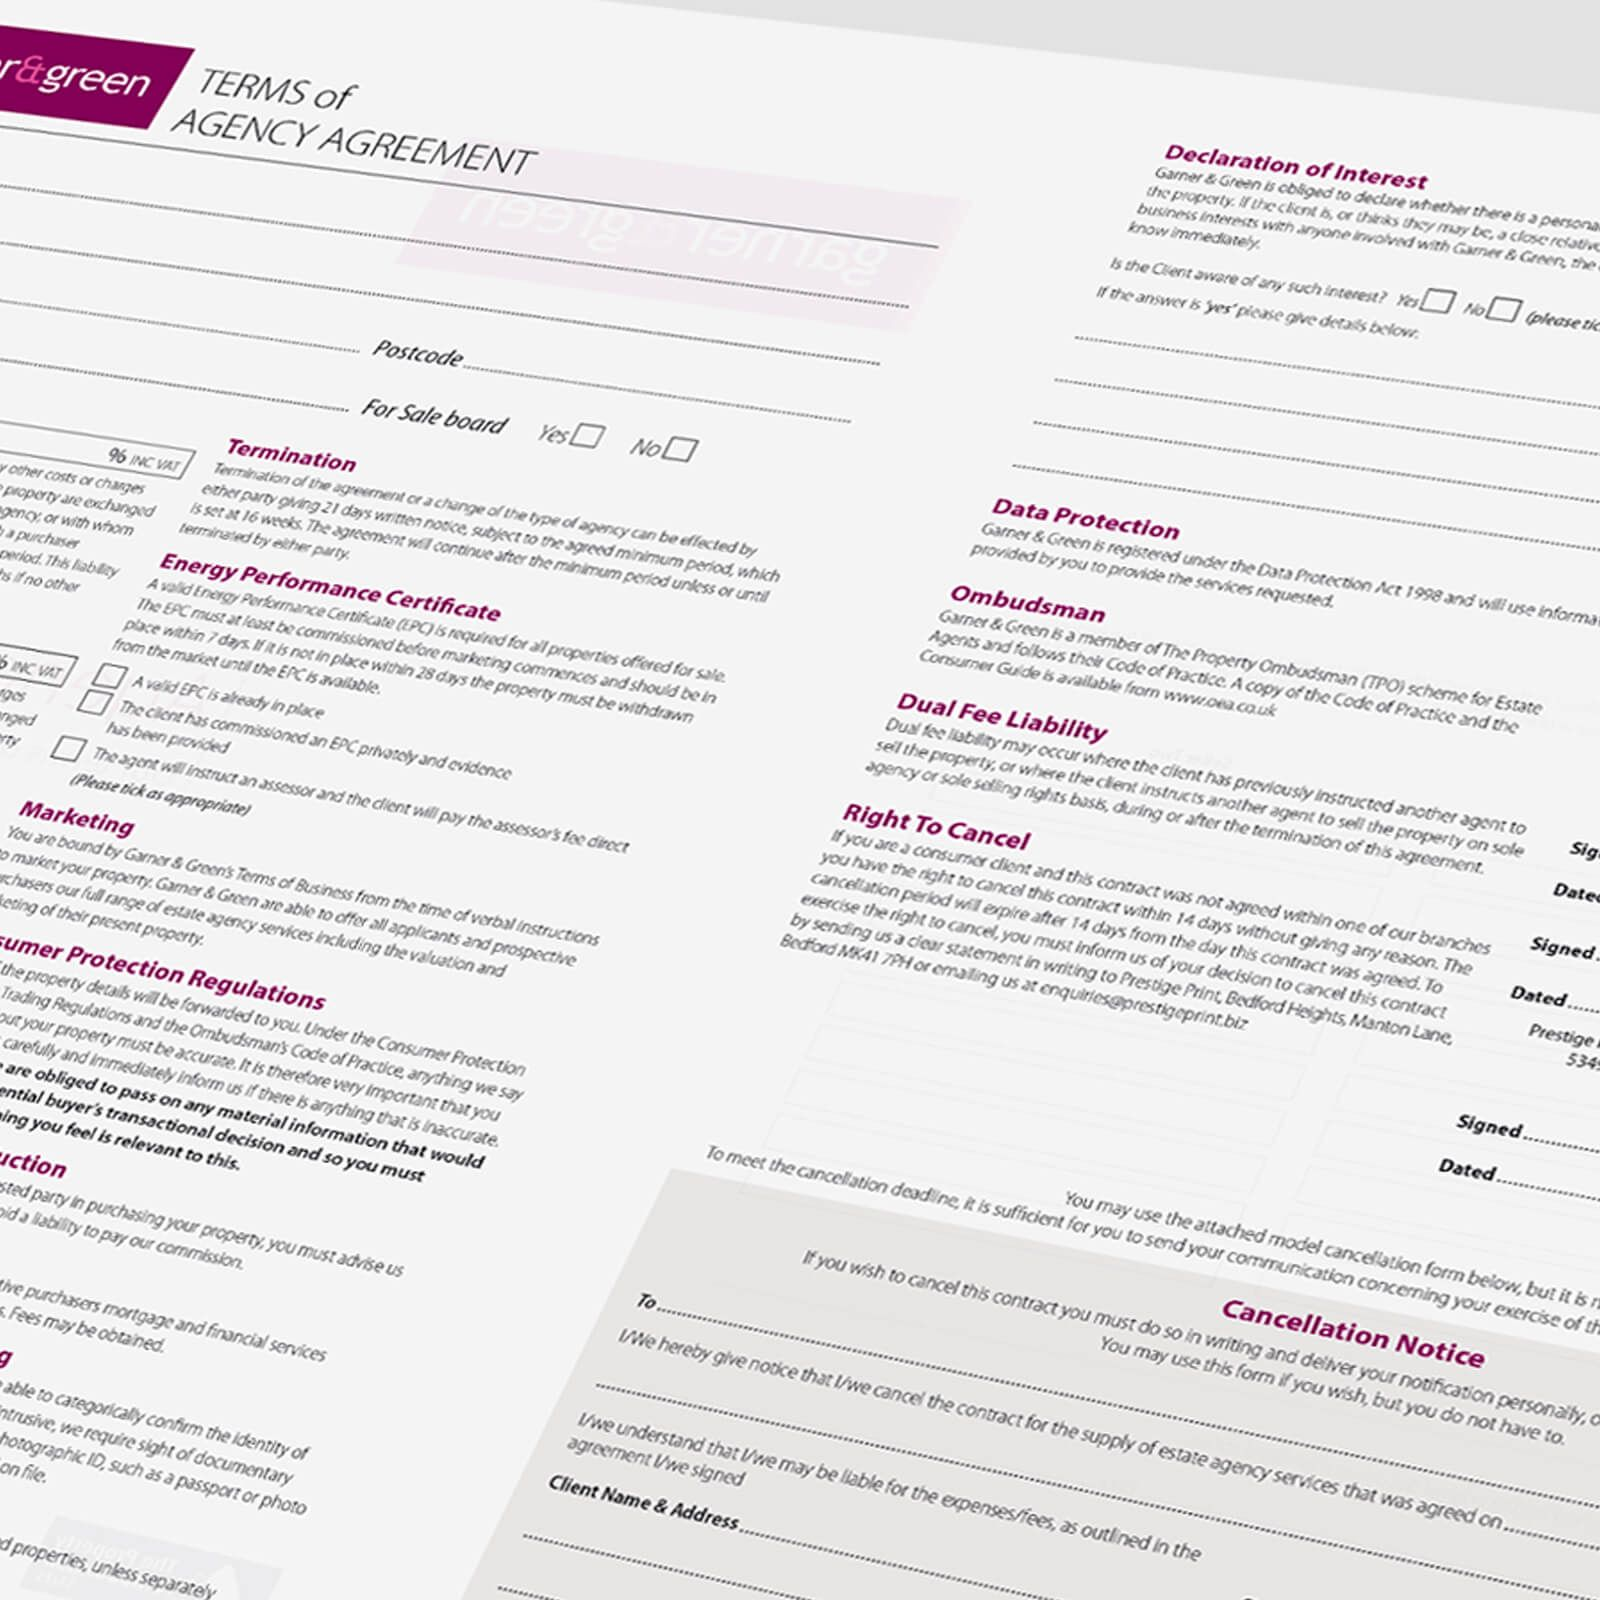 Estate Agents Agreement Template Featurehead Ncr S 02